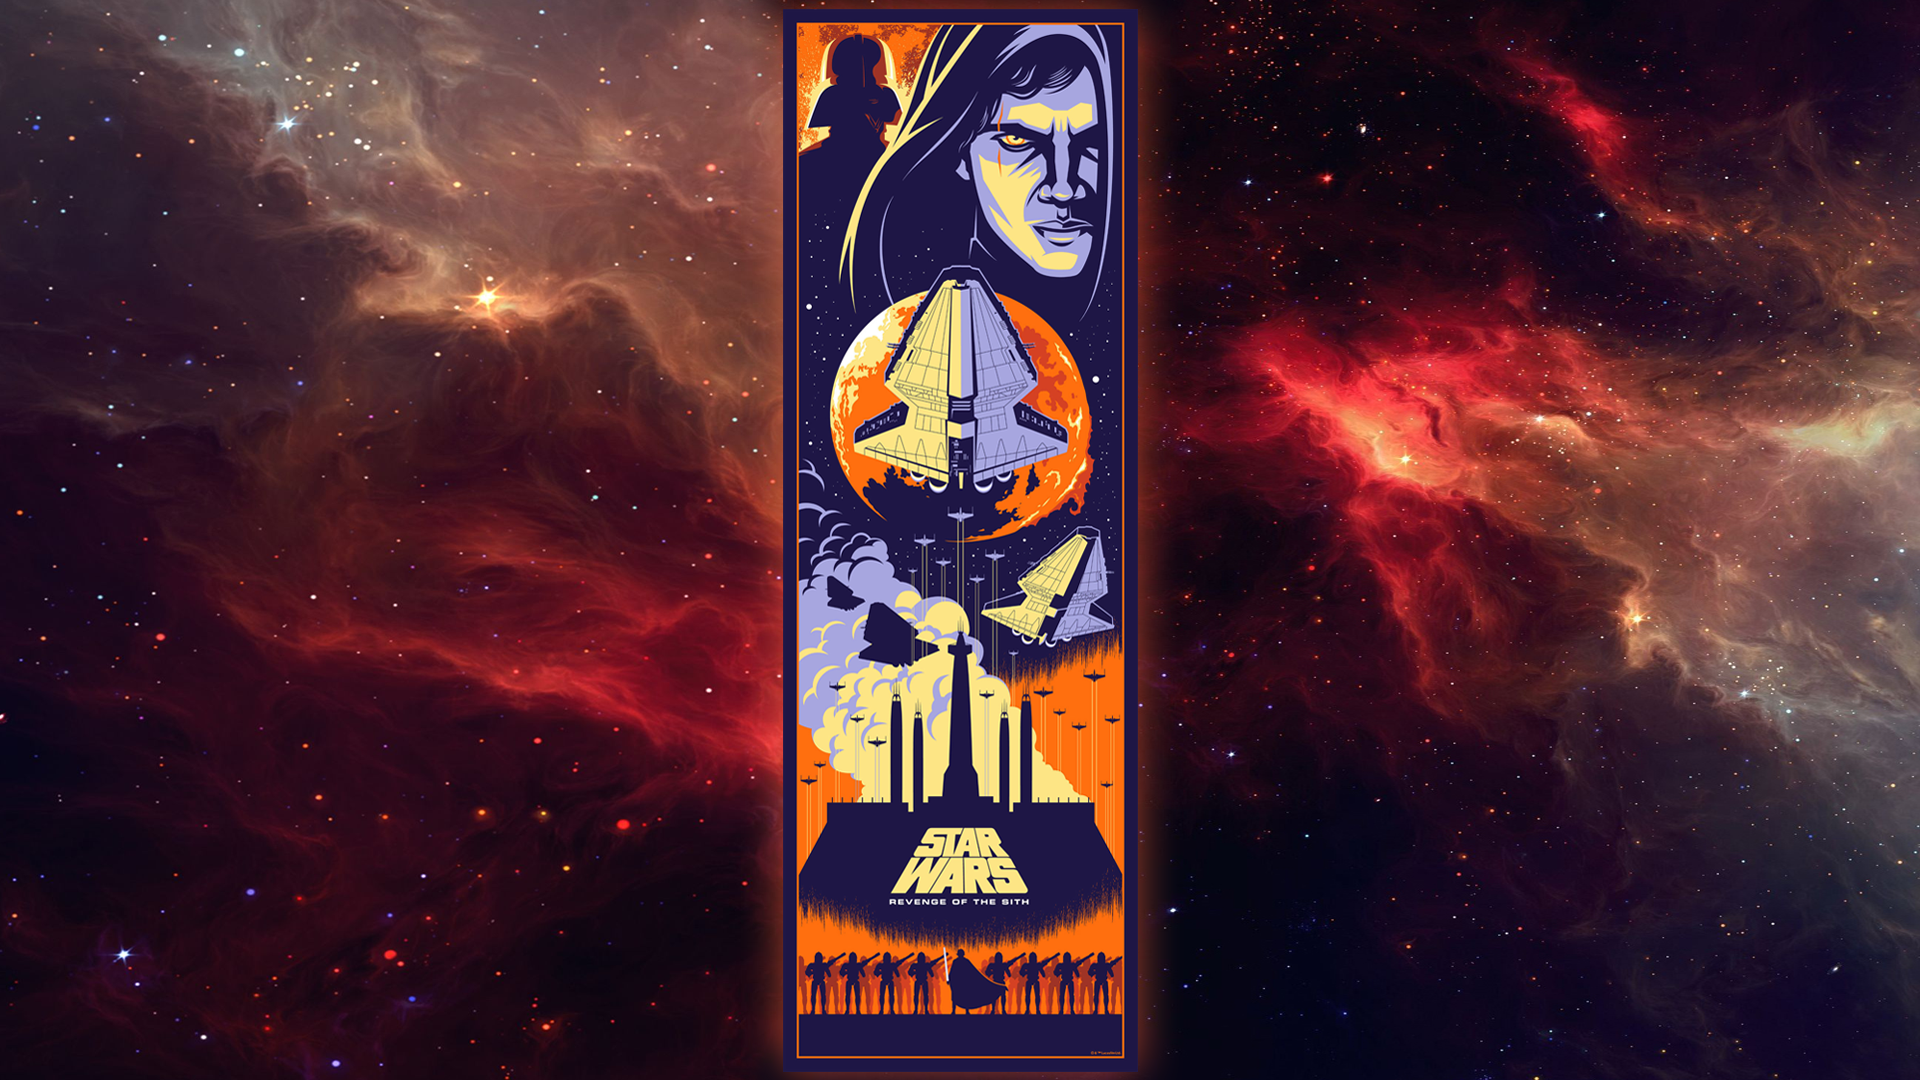 Revenge Of The Sith Wallpaper By Eric Tan By Spirit Of Adventure On Deviantart